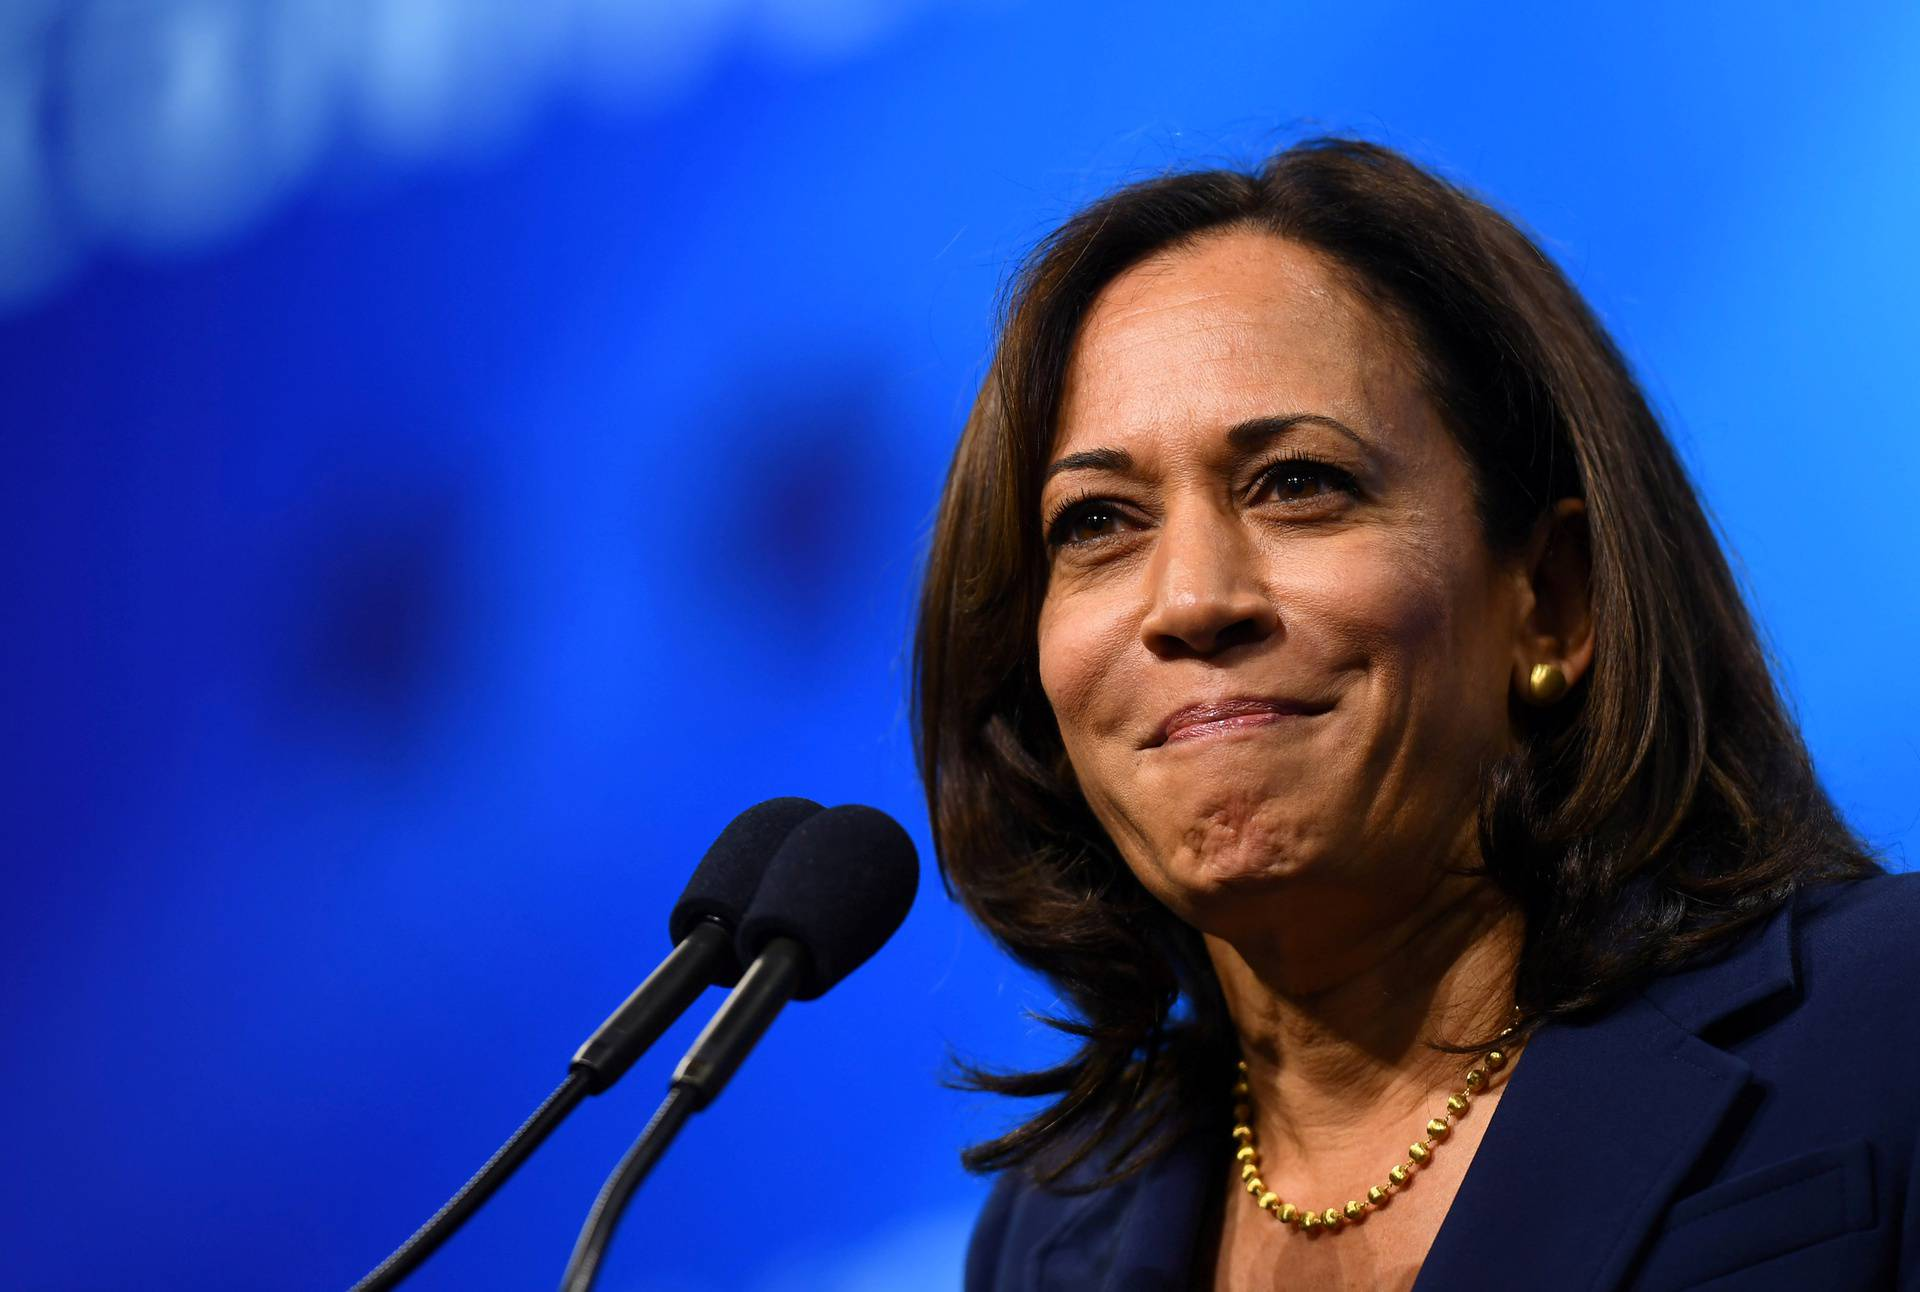 FILE PHOTO: Democratic 2020 U.S. presidential candidate and U.S. Senator Kamala Harris (D-CA) takes the stage at the New Hampshire Democratic Party state convention in Manchester